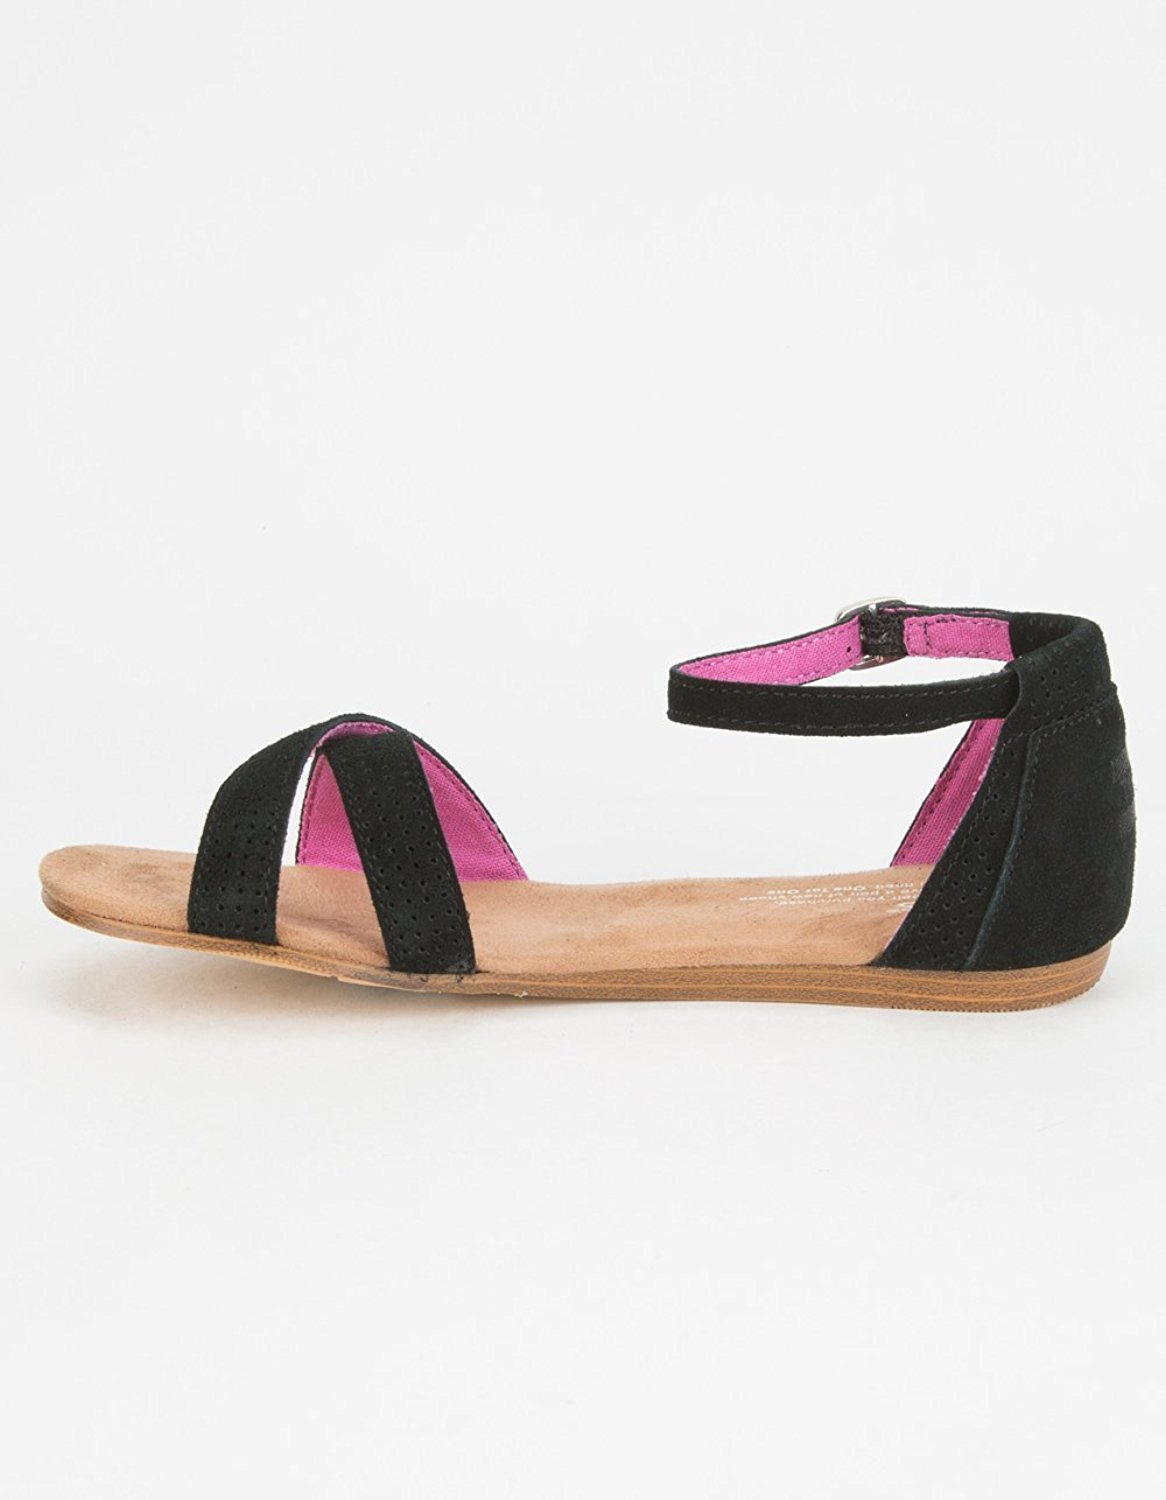 e947c48327fc Toms - TOMS Kids Girl s Correa Sandal (Little Kid Big Kid) Black Perforated  Suede Sa... - Walmart.com